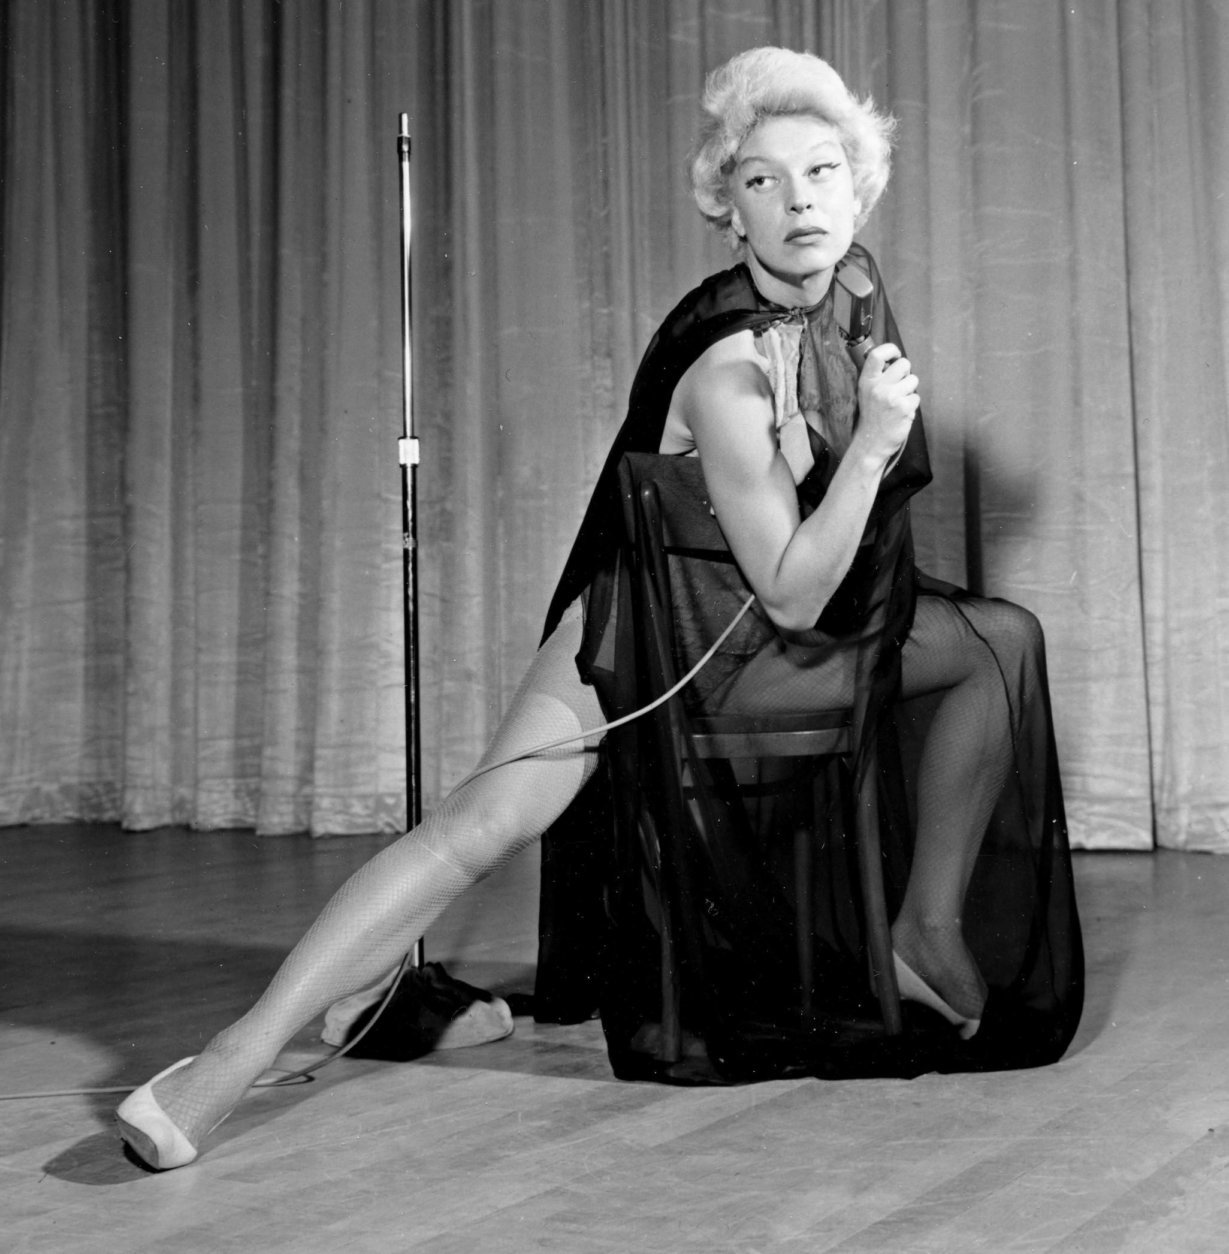 Actress and comedienne Carol Channing performs in her first nightclub opening appearance in Las Vegas, Nev., on July 9, 1957.  Channing wears an $11.85 costume as she impersonates Marlene Dietrich, who recently appeared on a neighboring stage in a $20,000 gown.  (AP Photo)